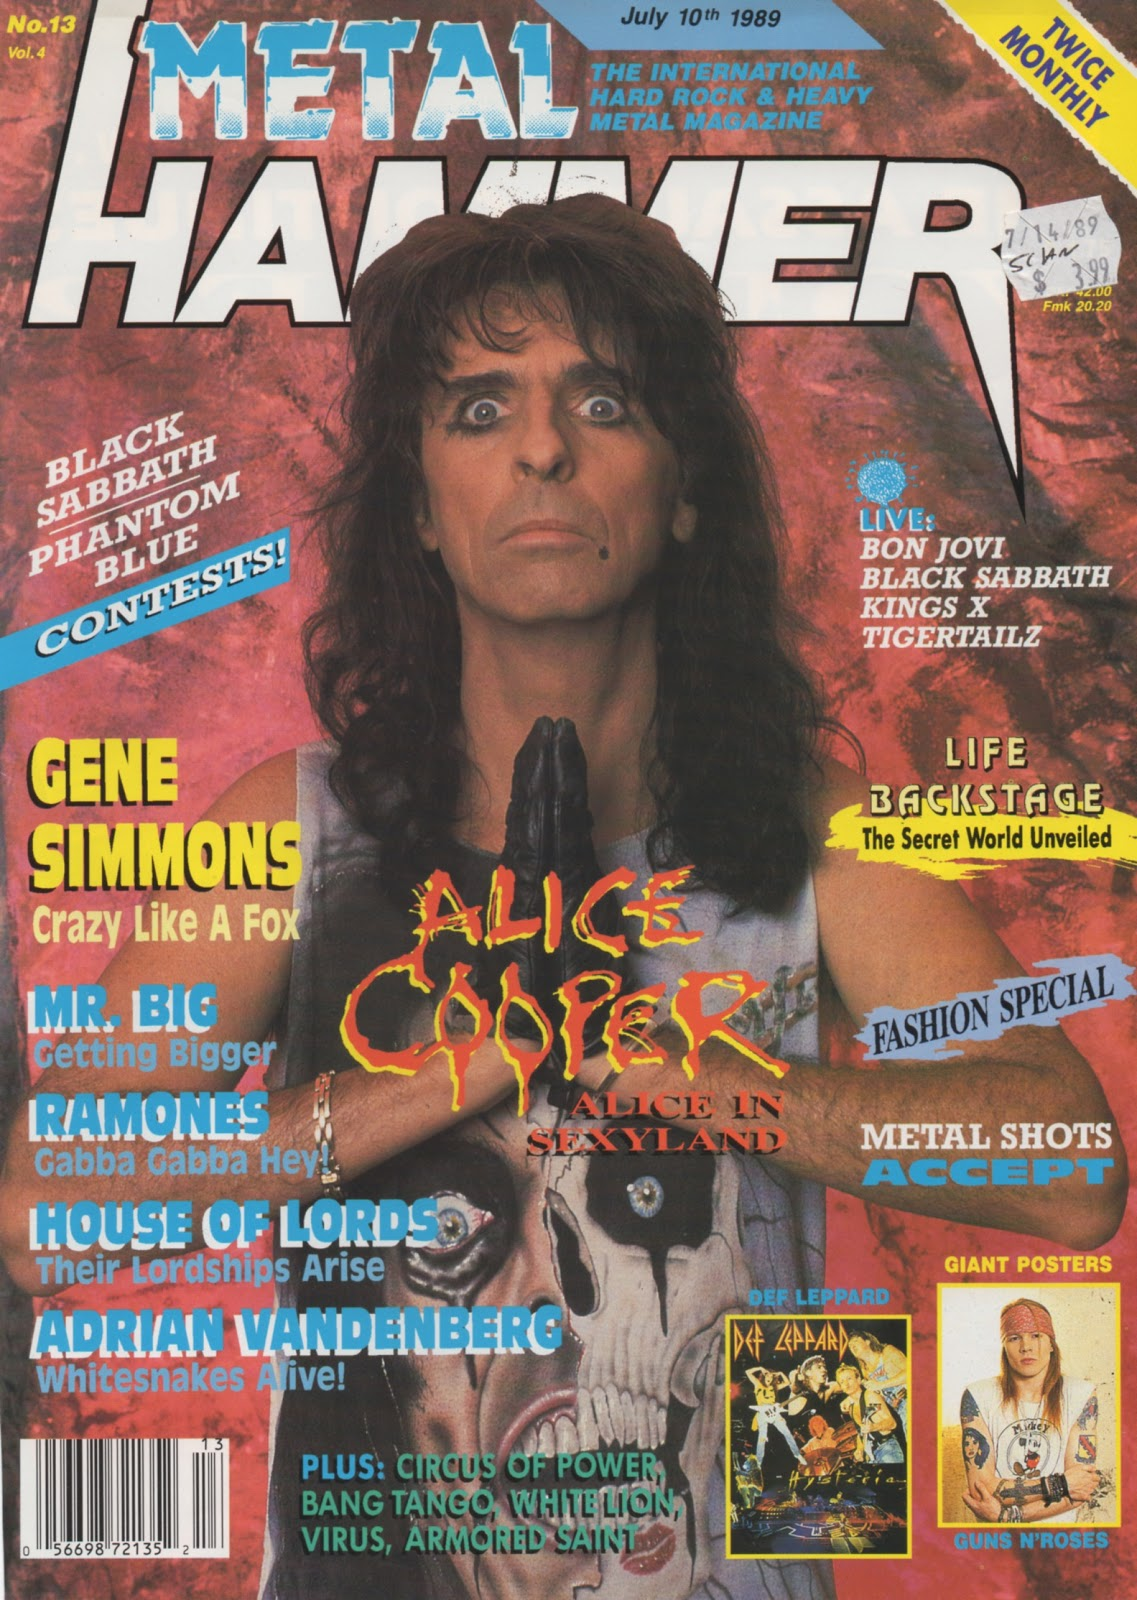 1989 Metal Hammer July 10th Issue